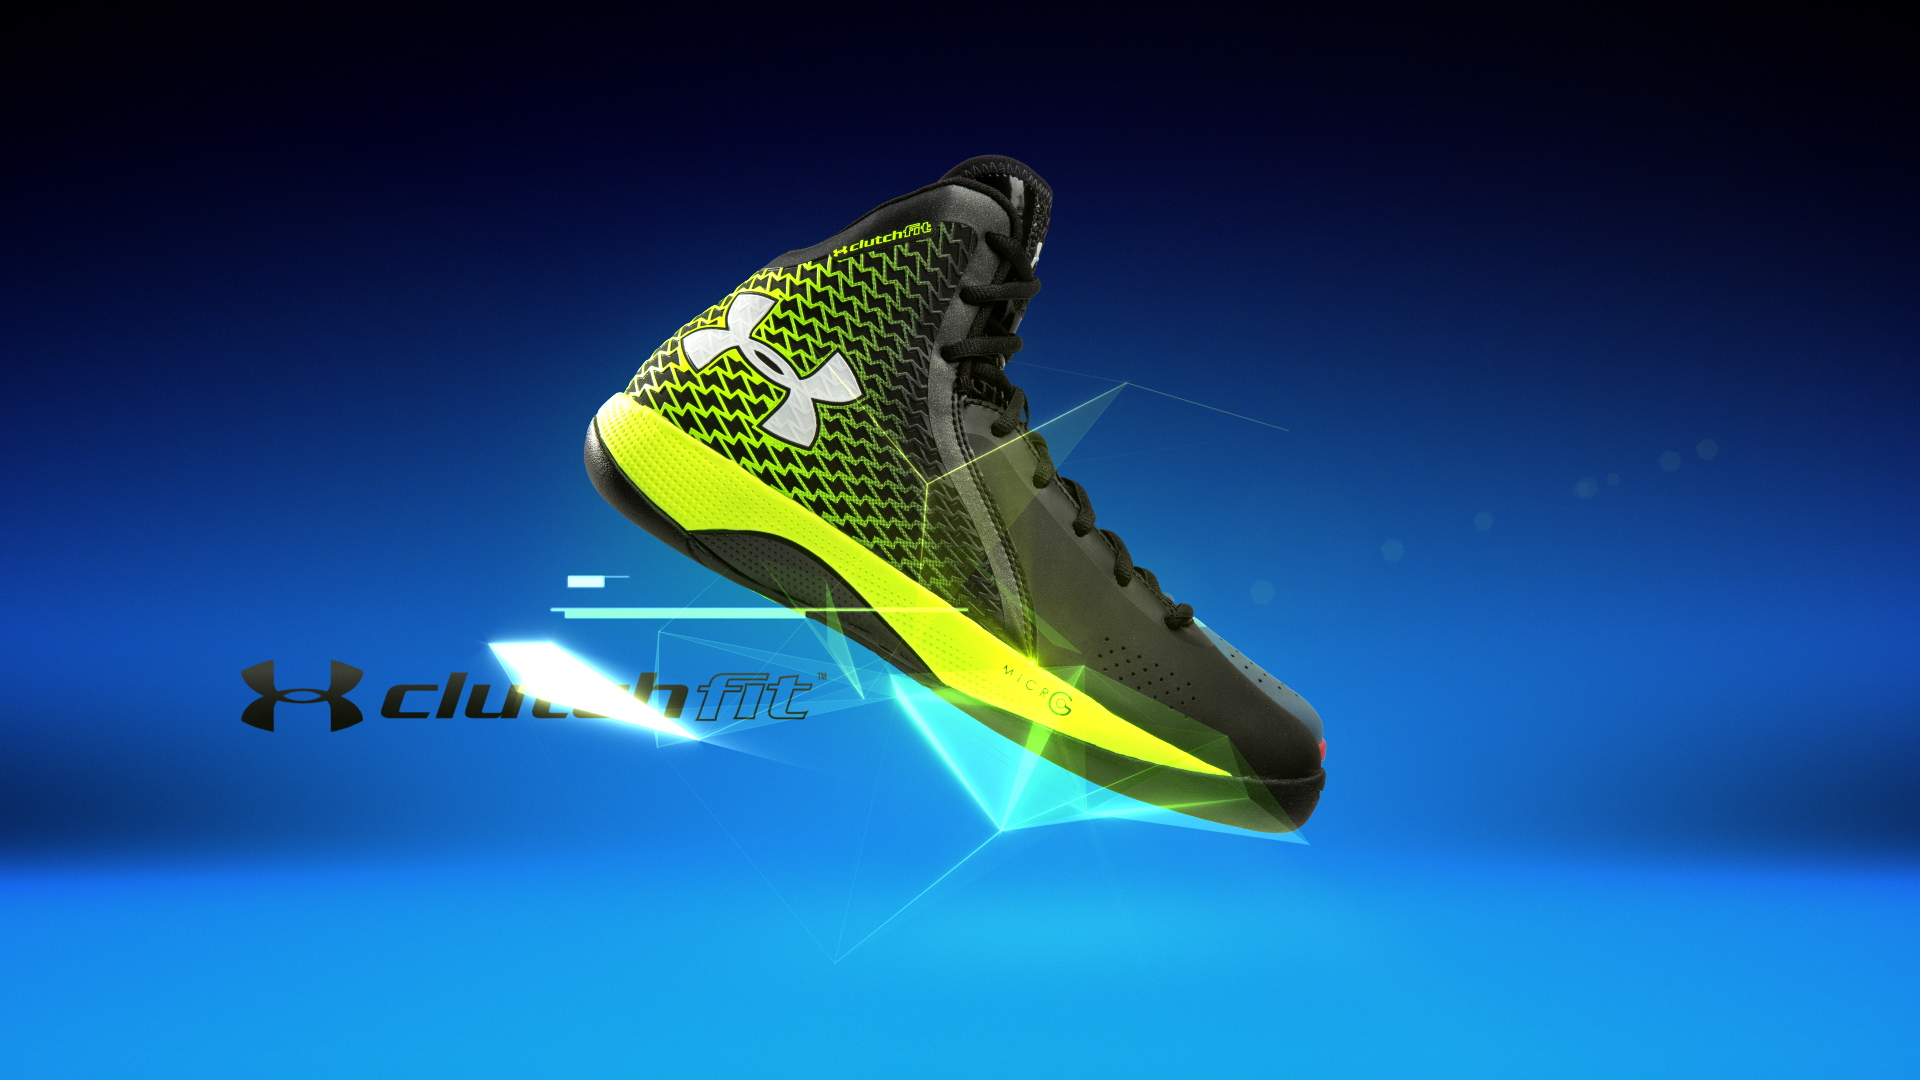 stephCurry_00015